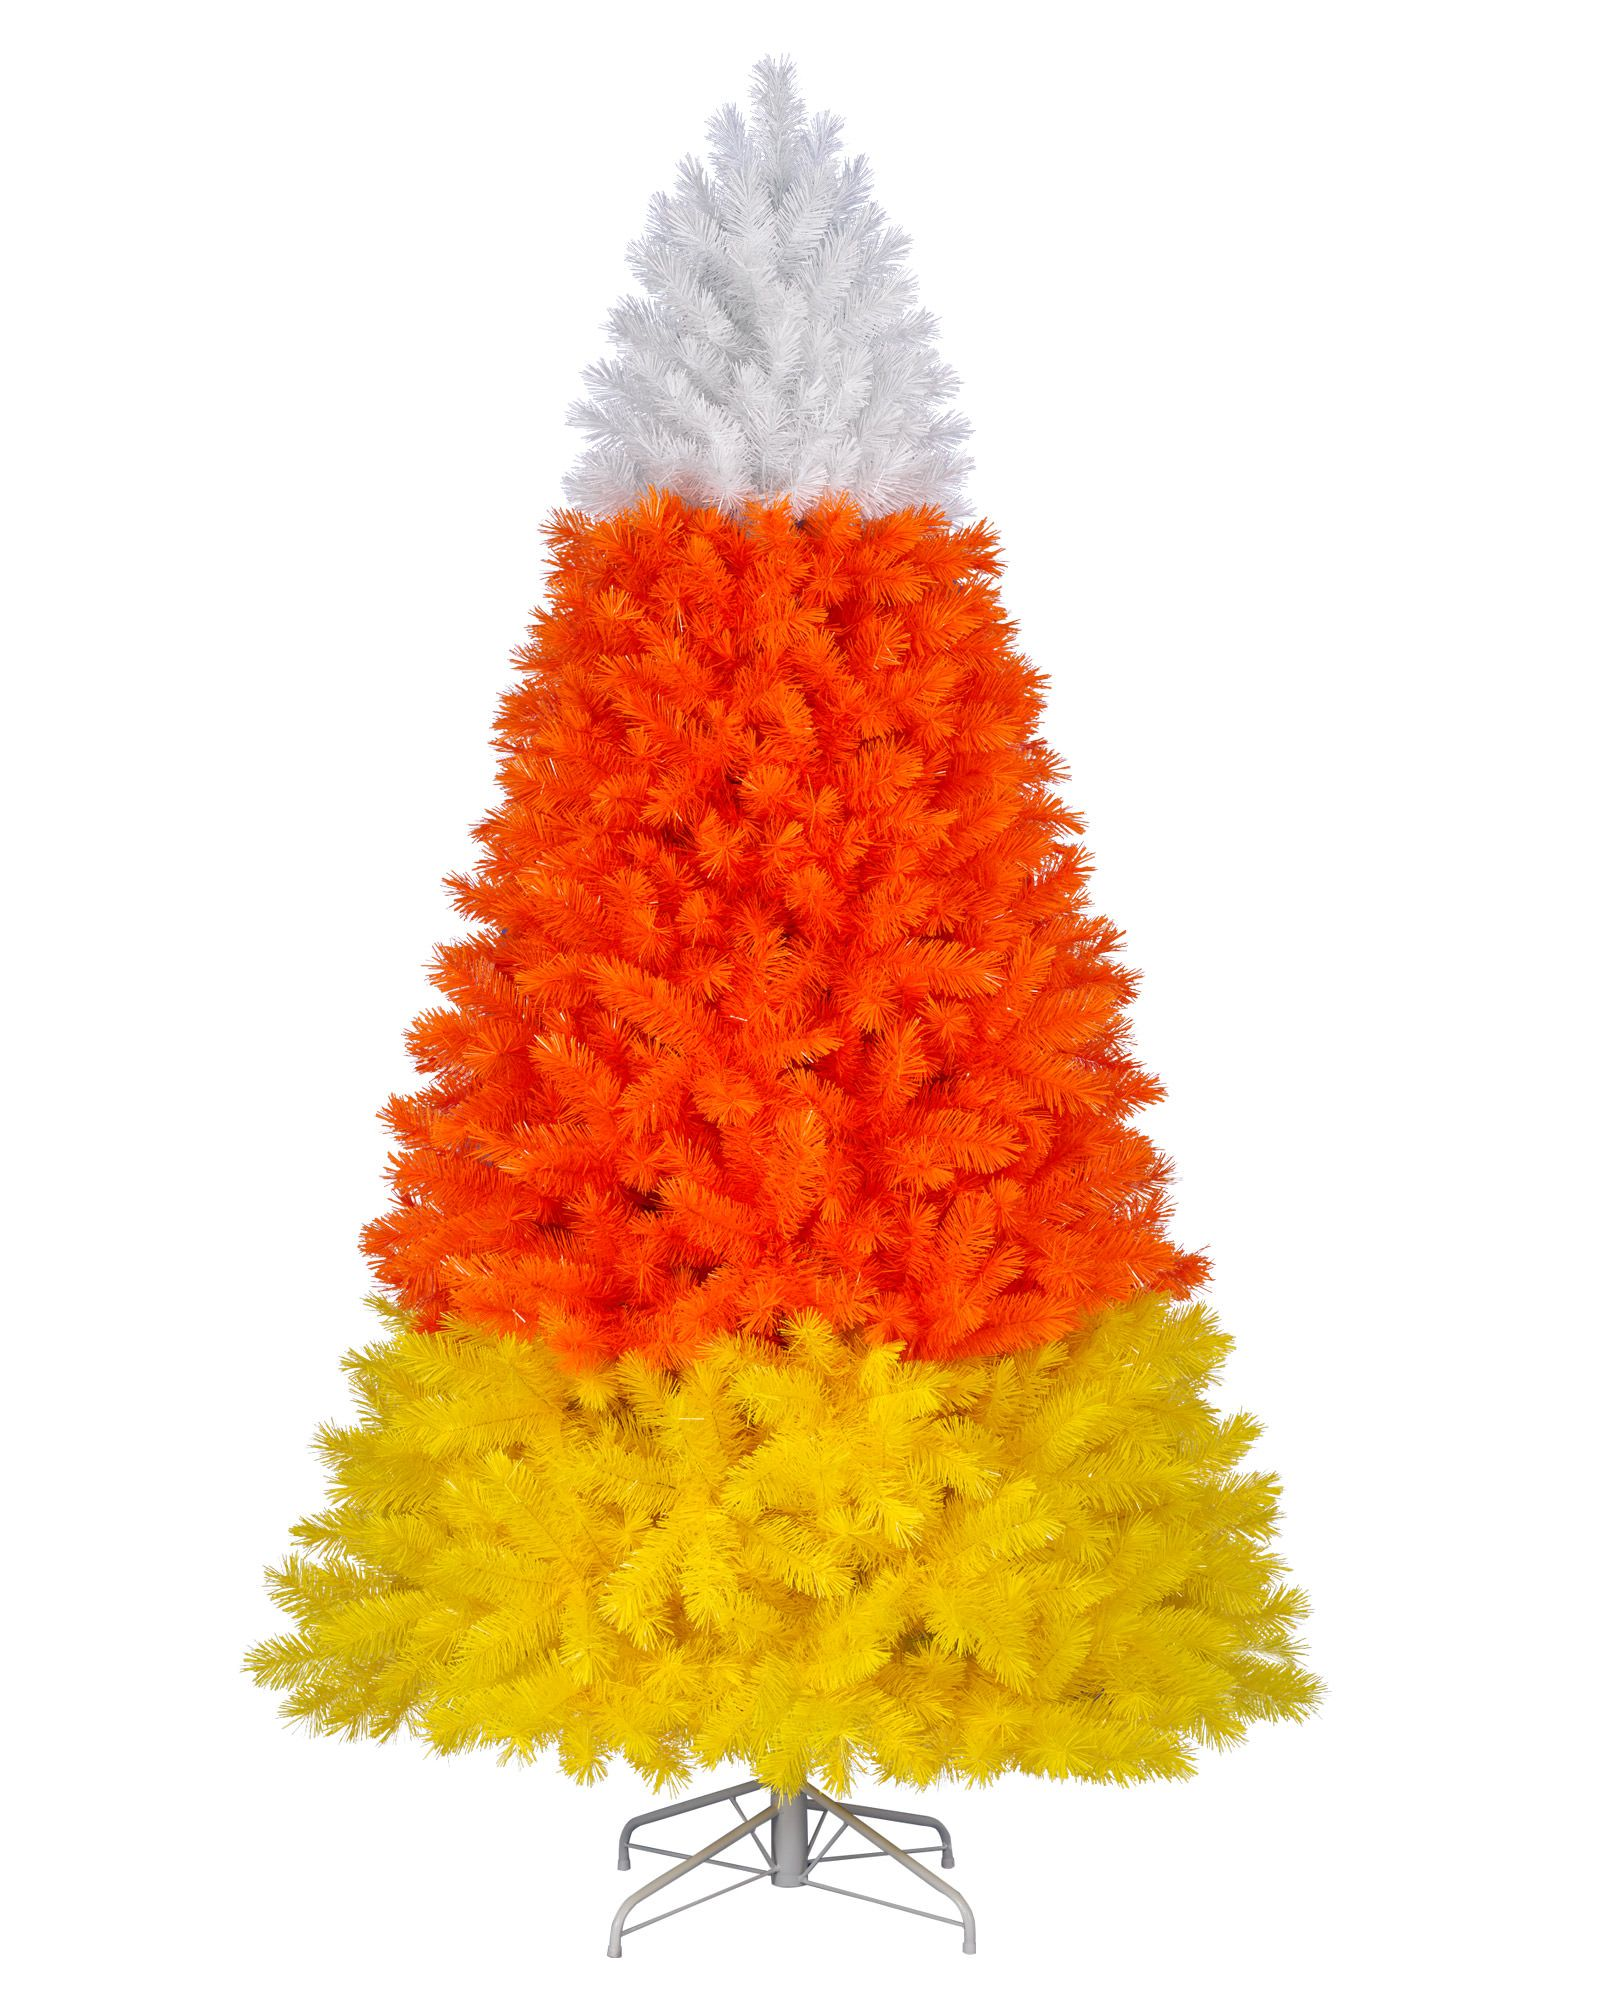 Halloween 2020 Candy Corn Tree Colossal Candy Corn Christmas Tree | Treetopia in 2020 | Candy